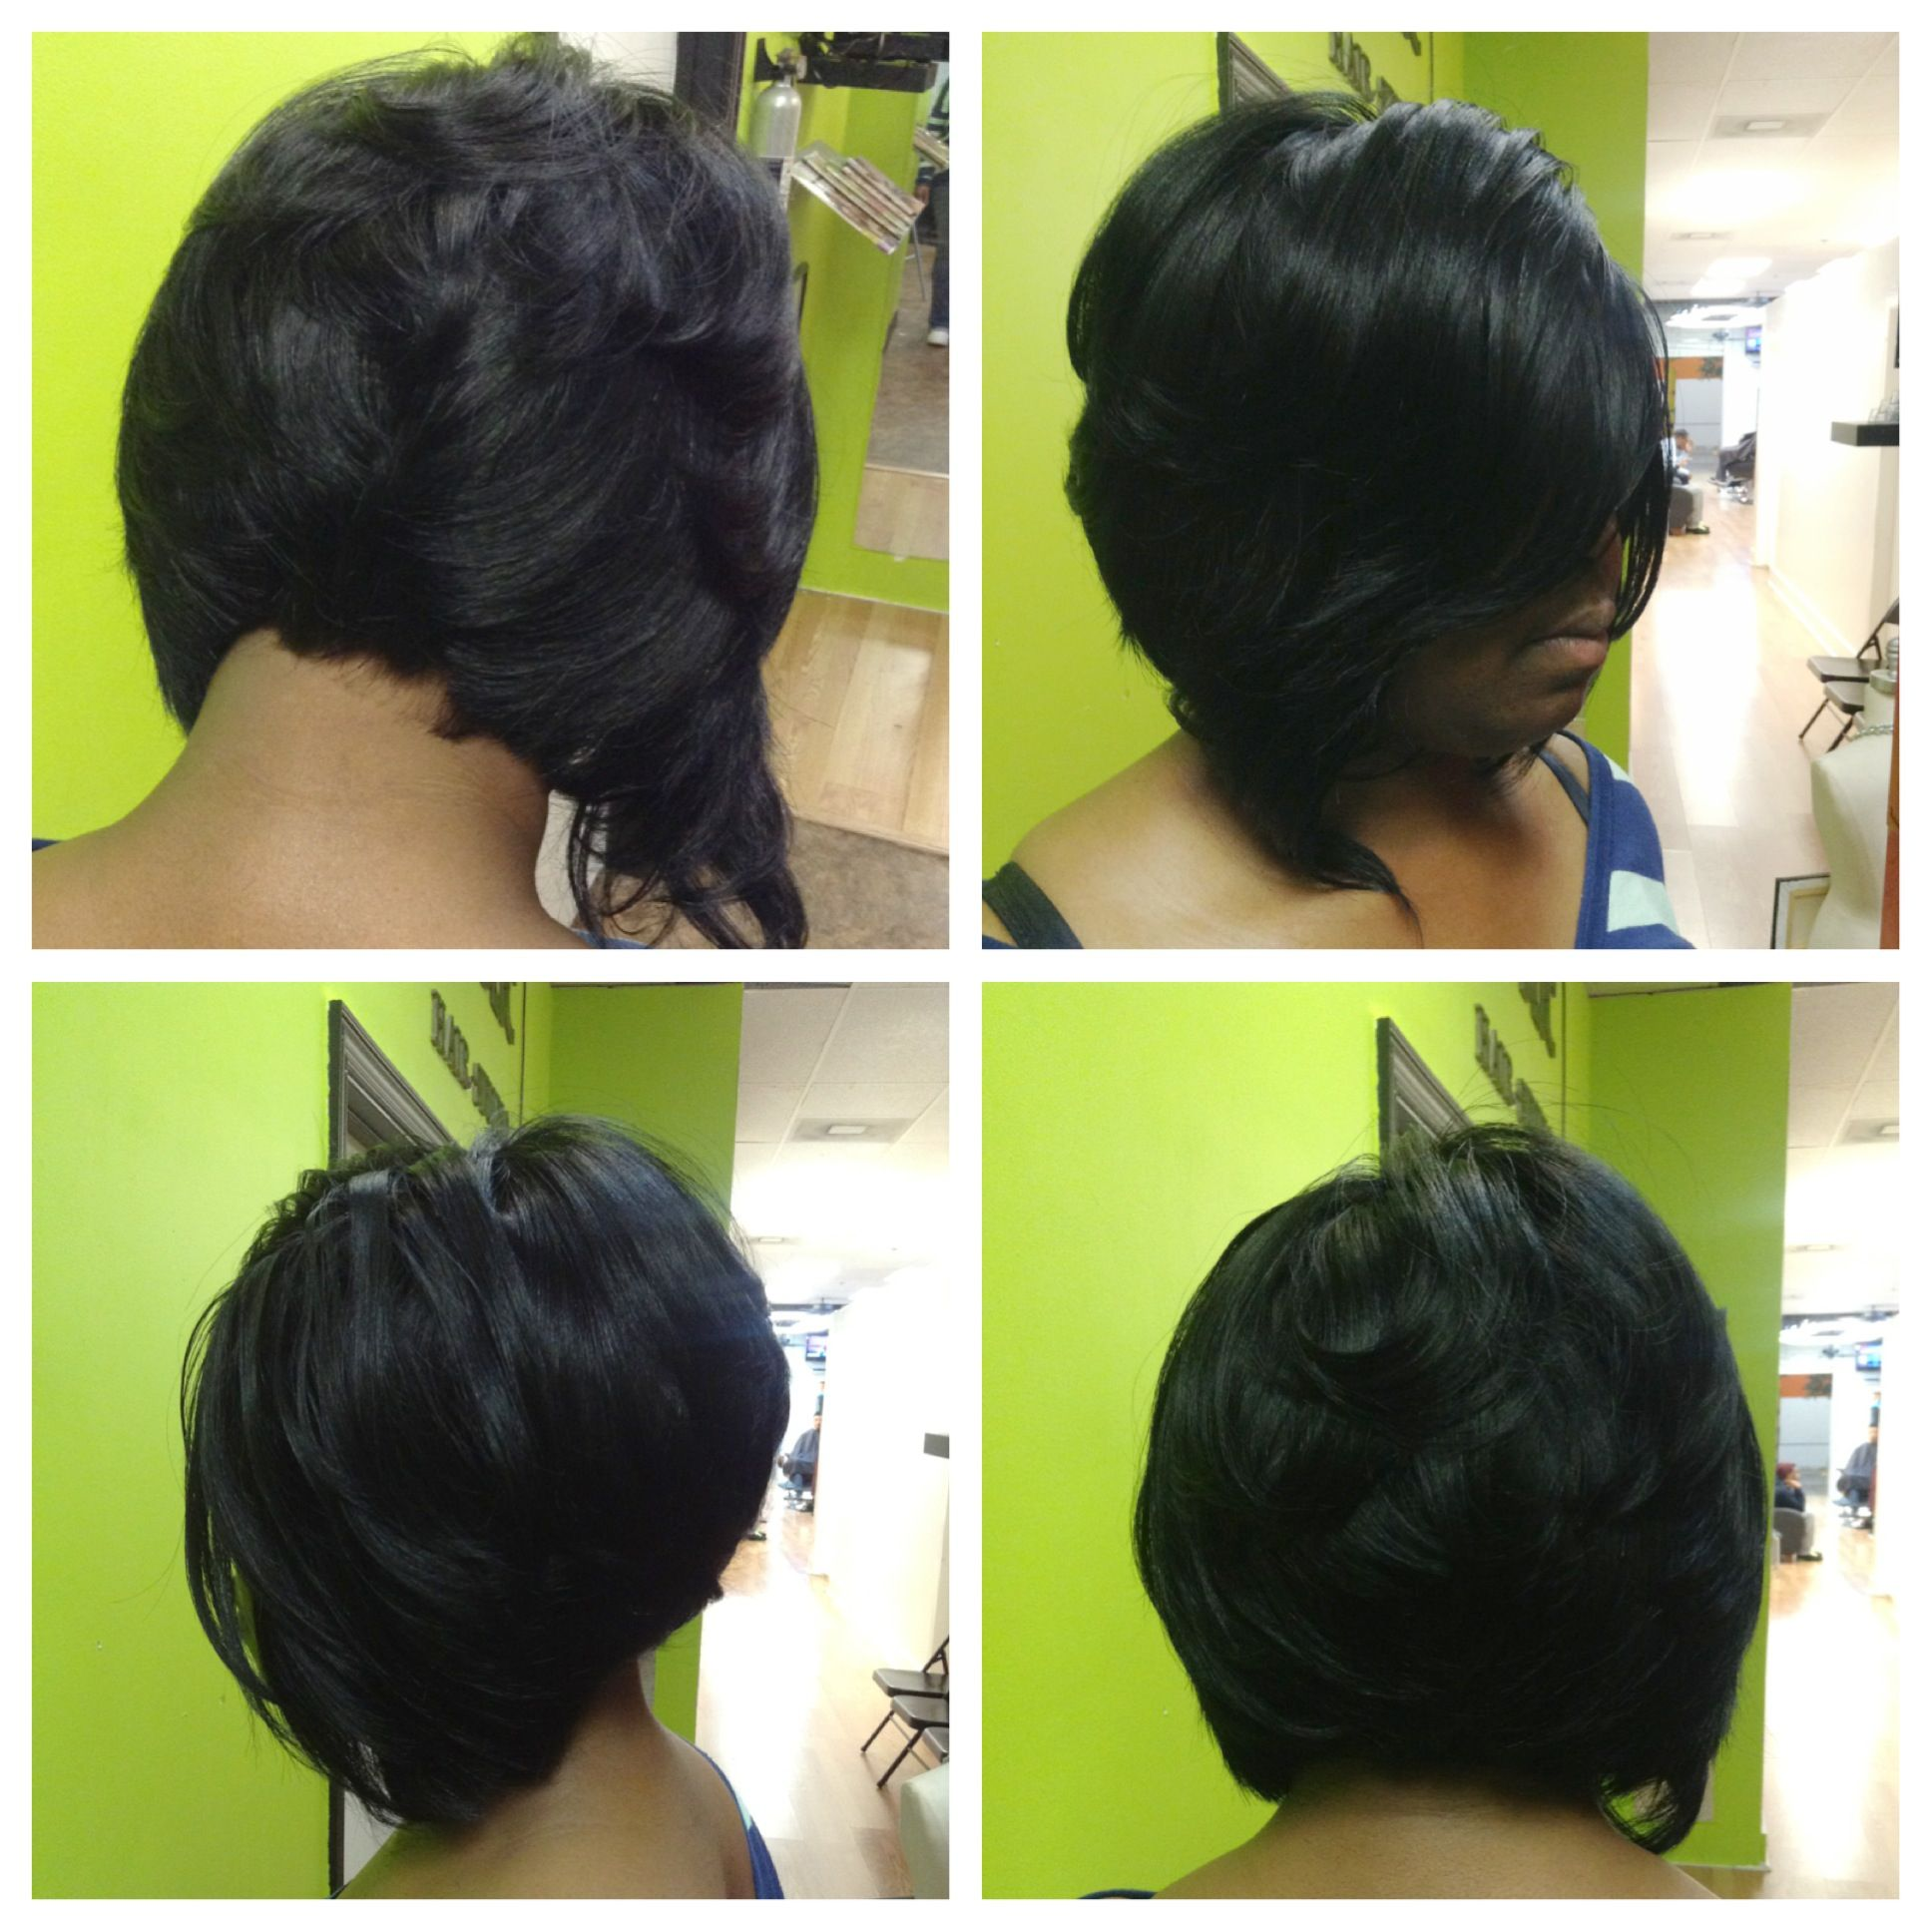 weave hairstyles for short hair - short hairstyles for women and man